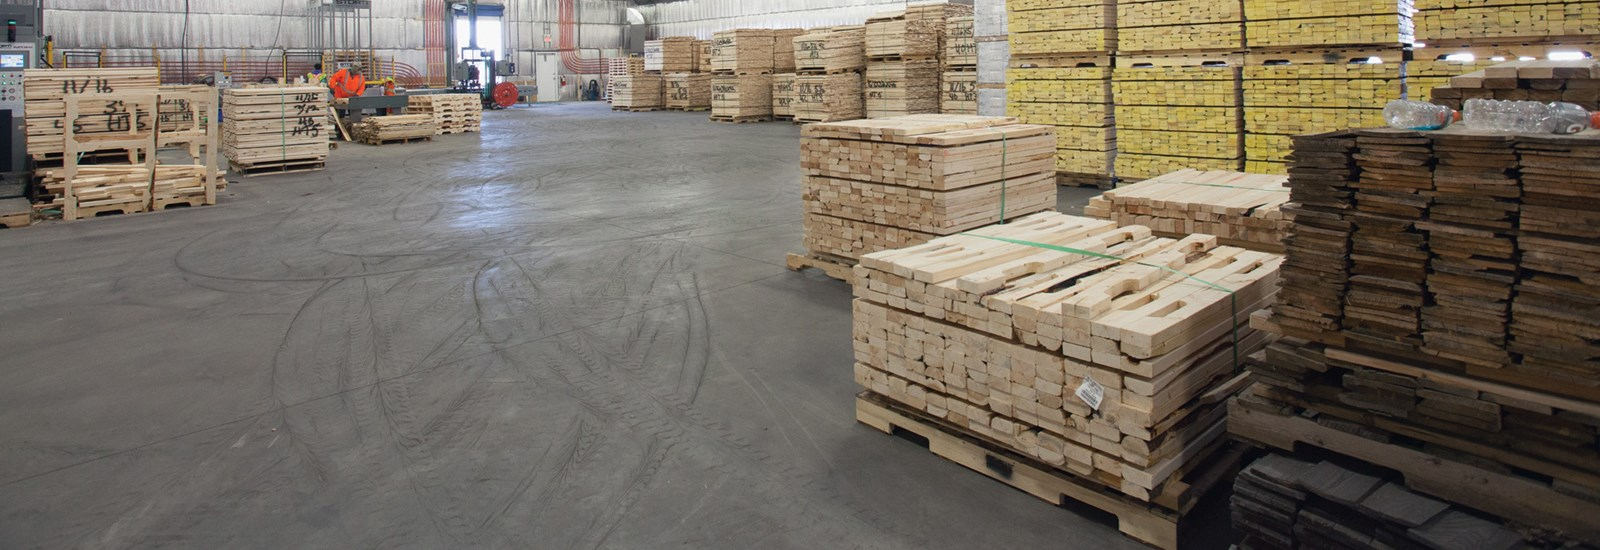 Warehouse for North Star Pallets | Norseman Structures